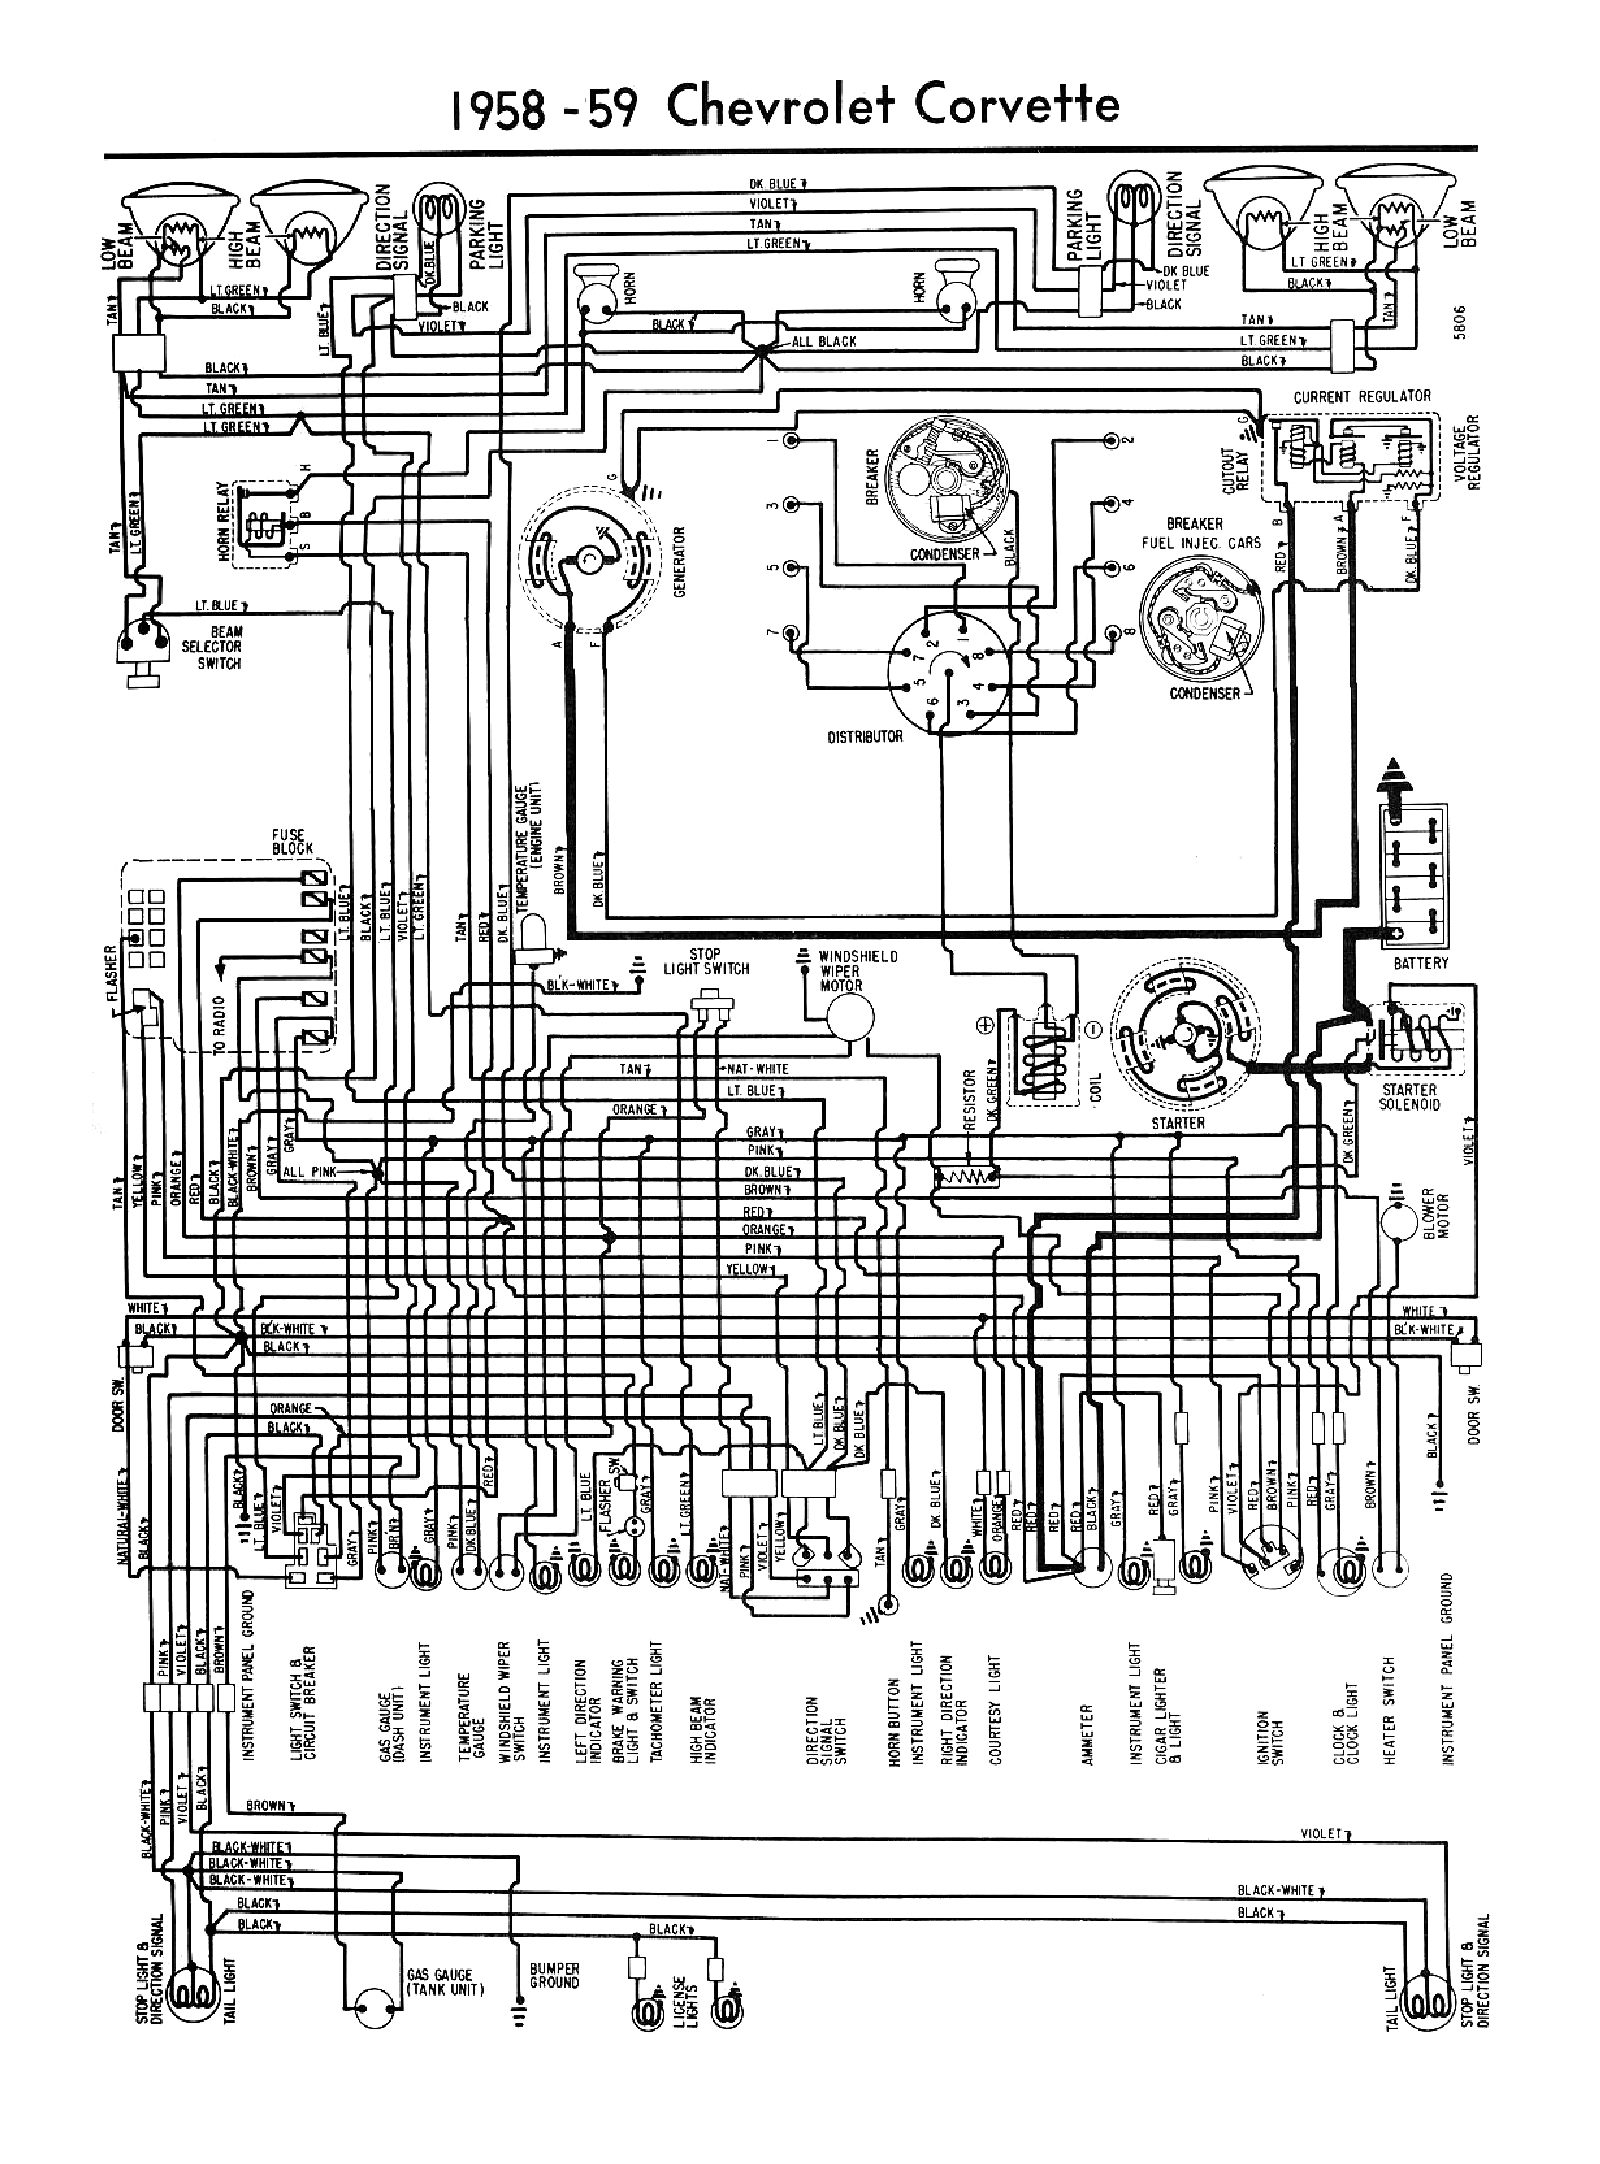 Chevy Wiring Diagrams Basic Electrical Diagram 1958 Corvette